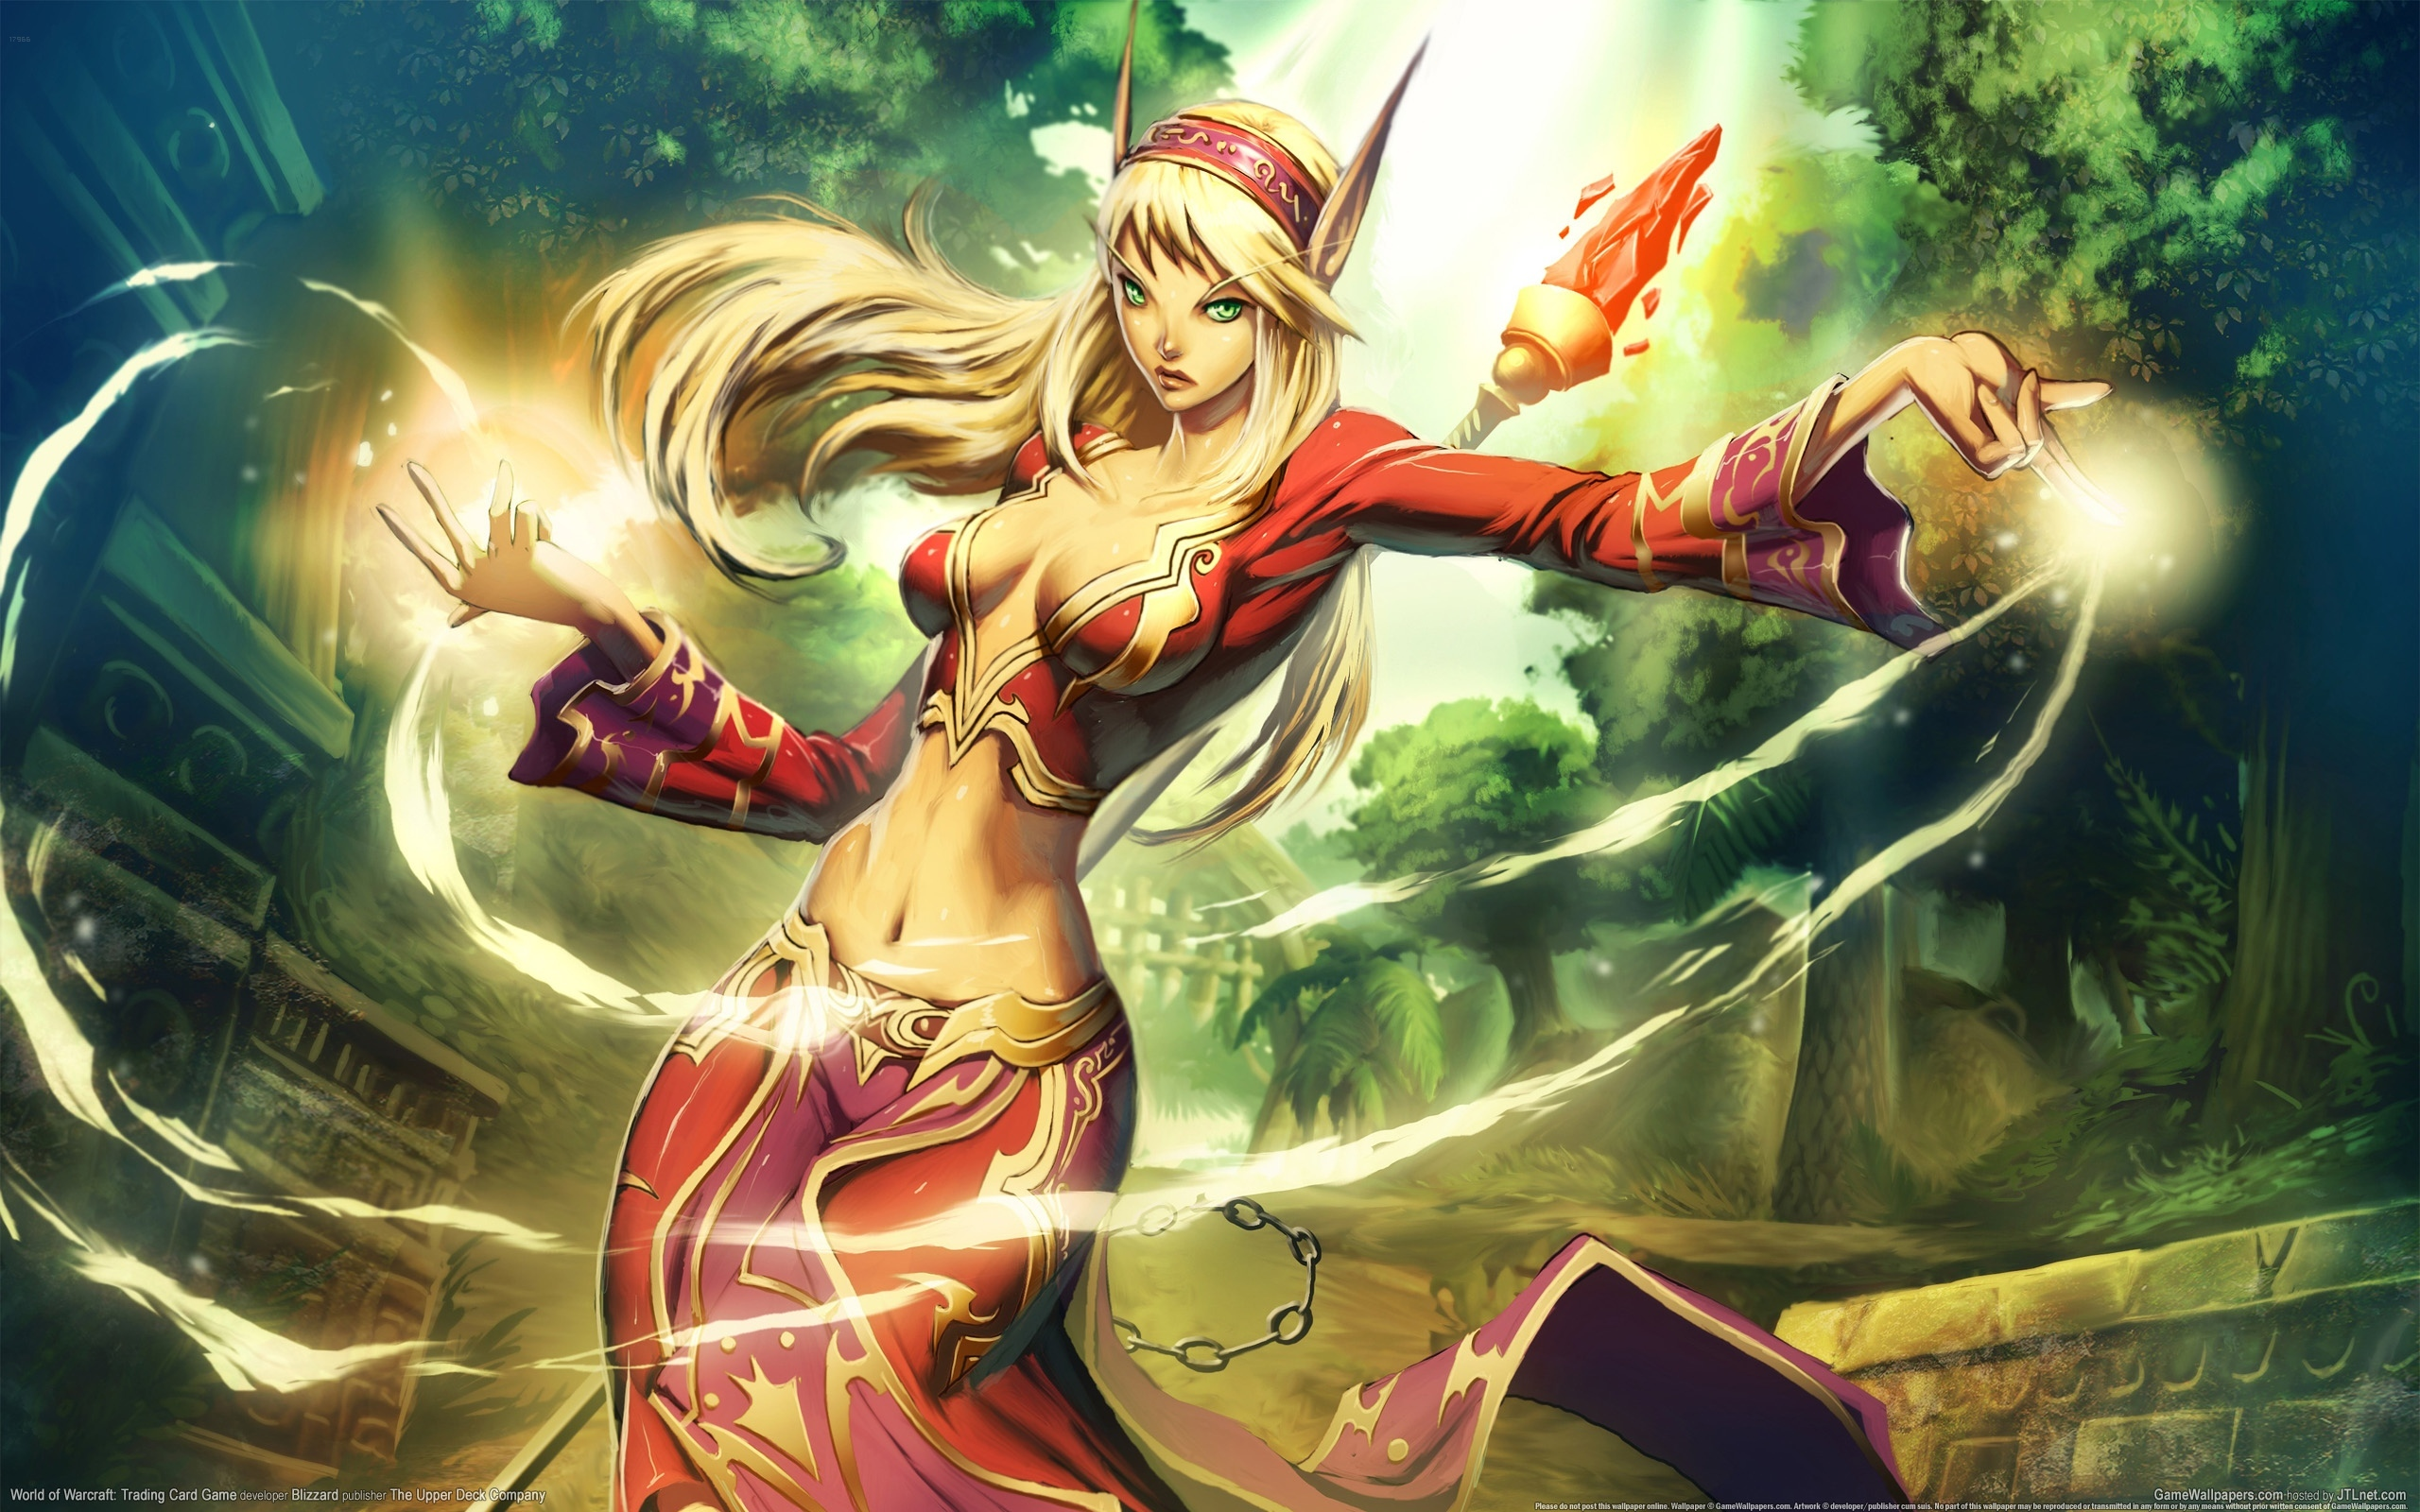 World of warcraft striping blood elf nackt photos